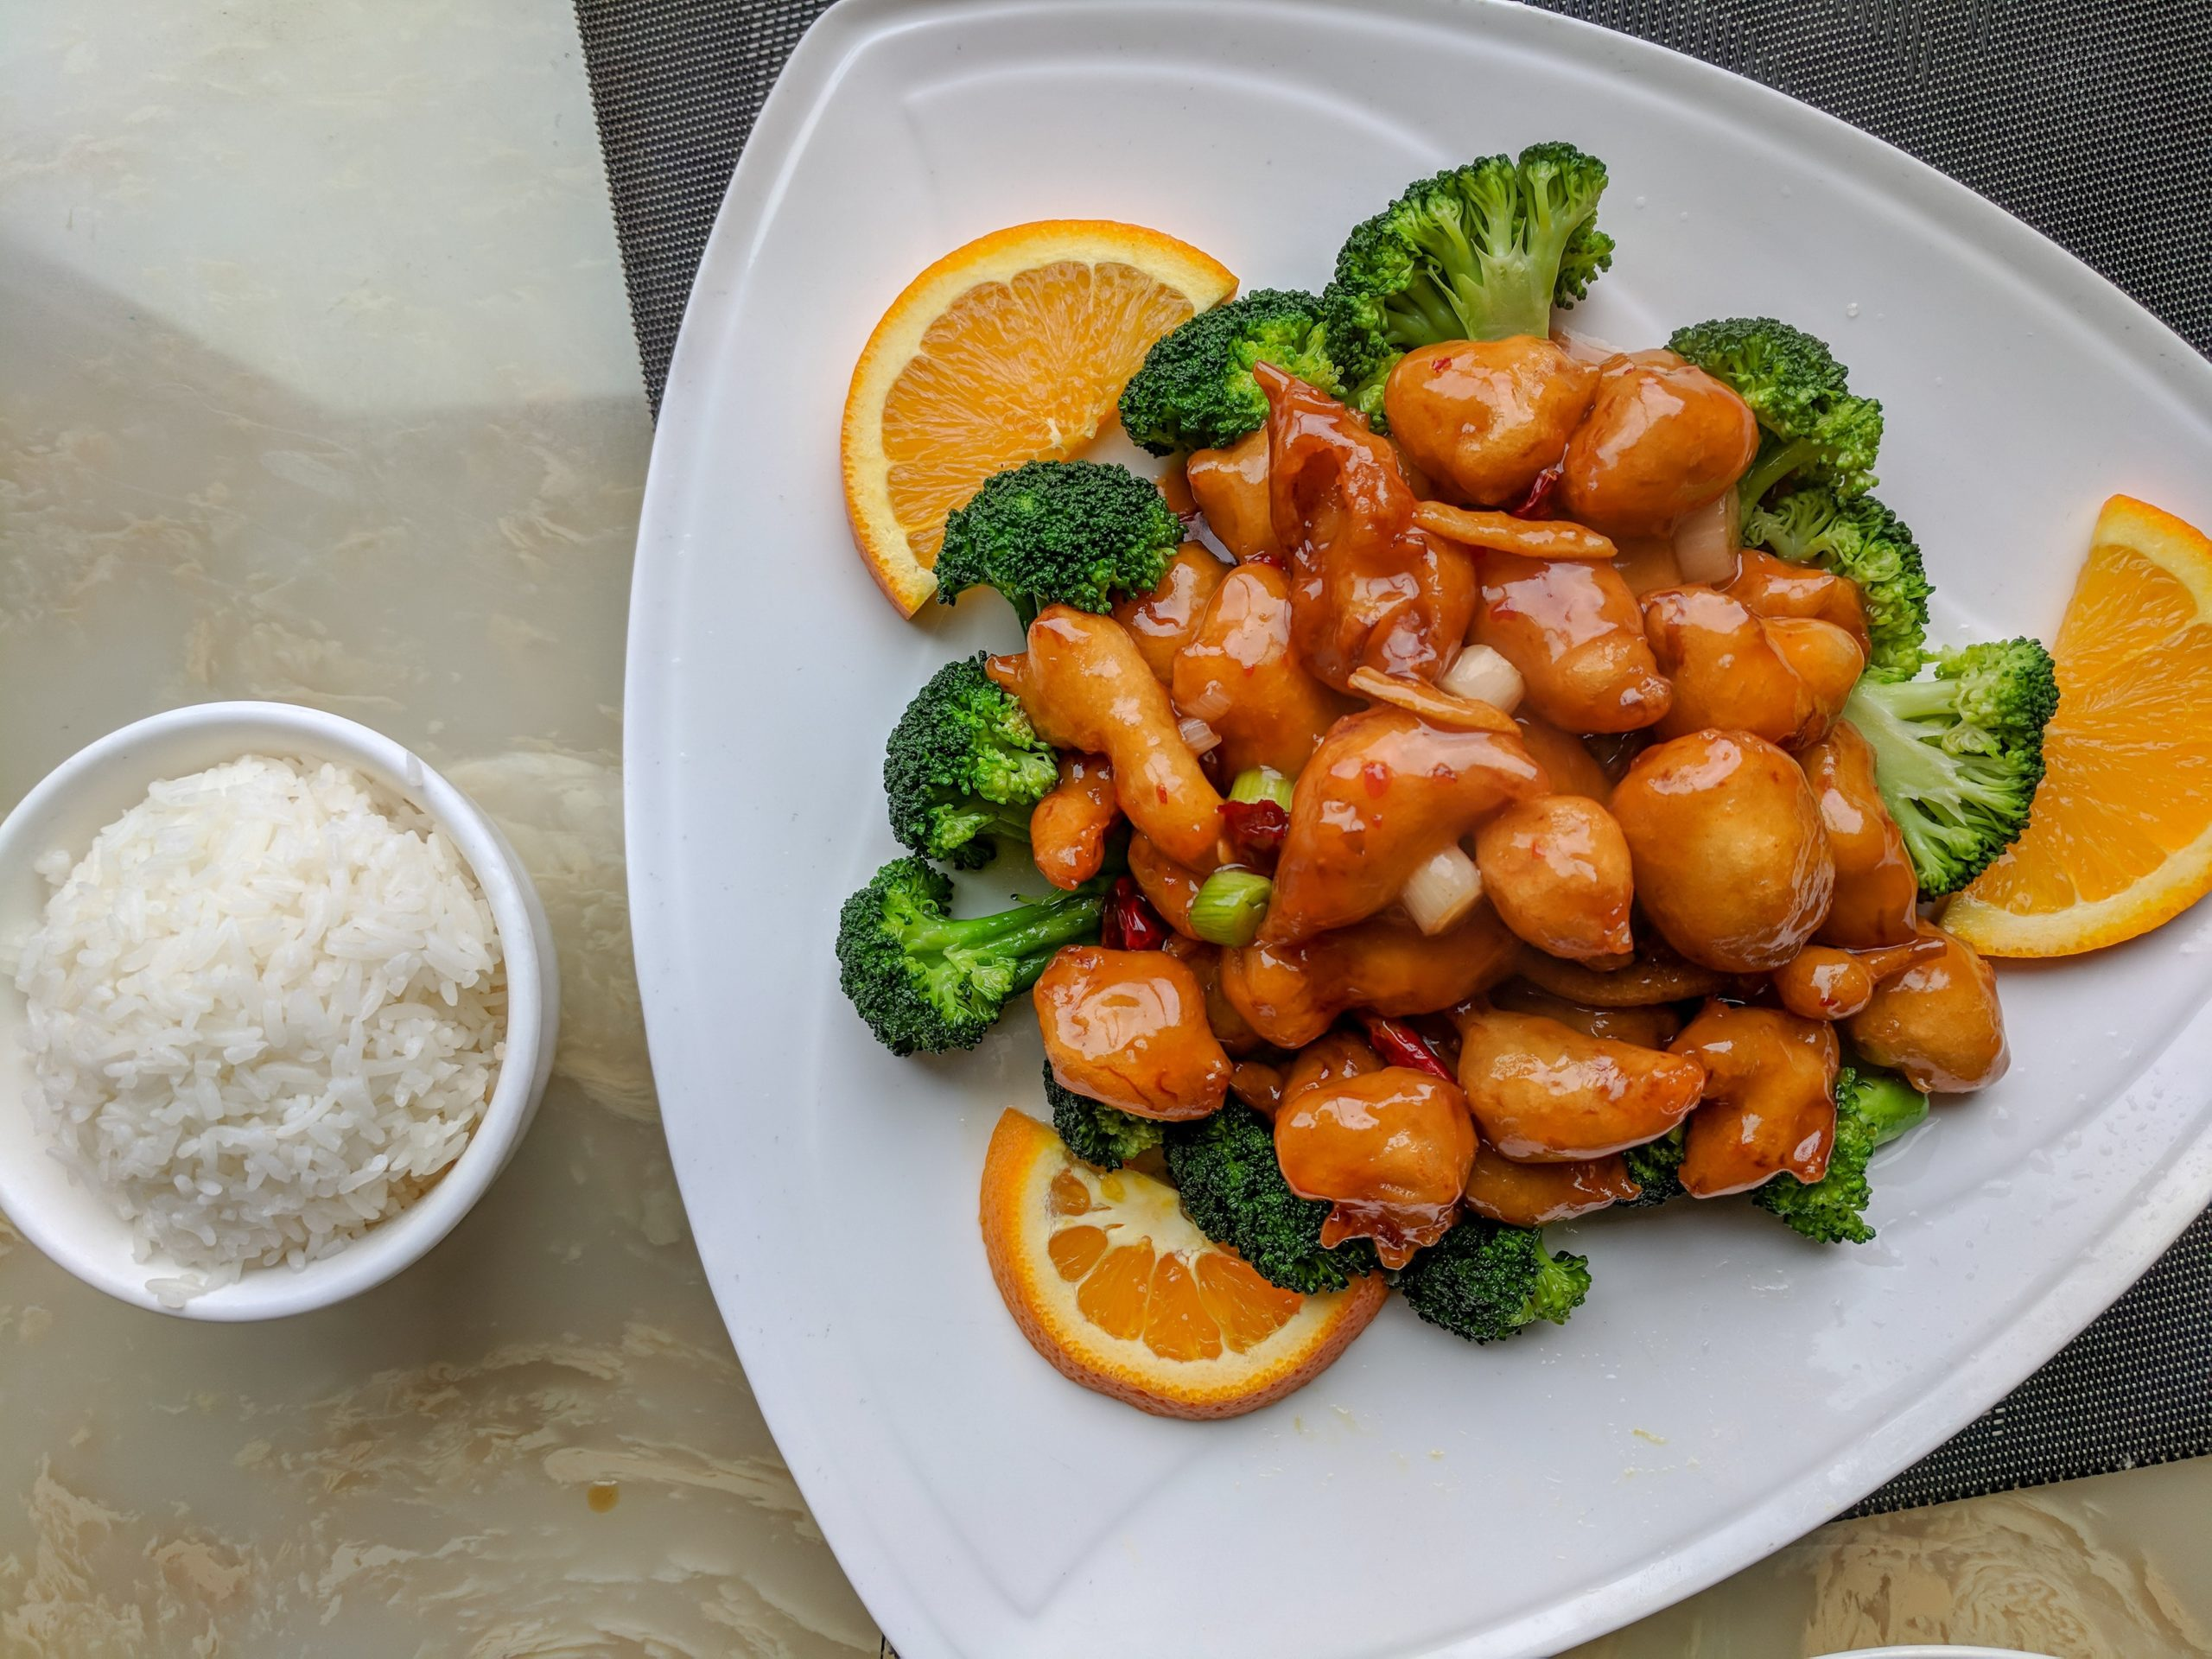 Some Unknown Healthy Chinese Food